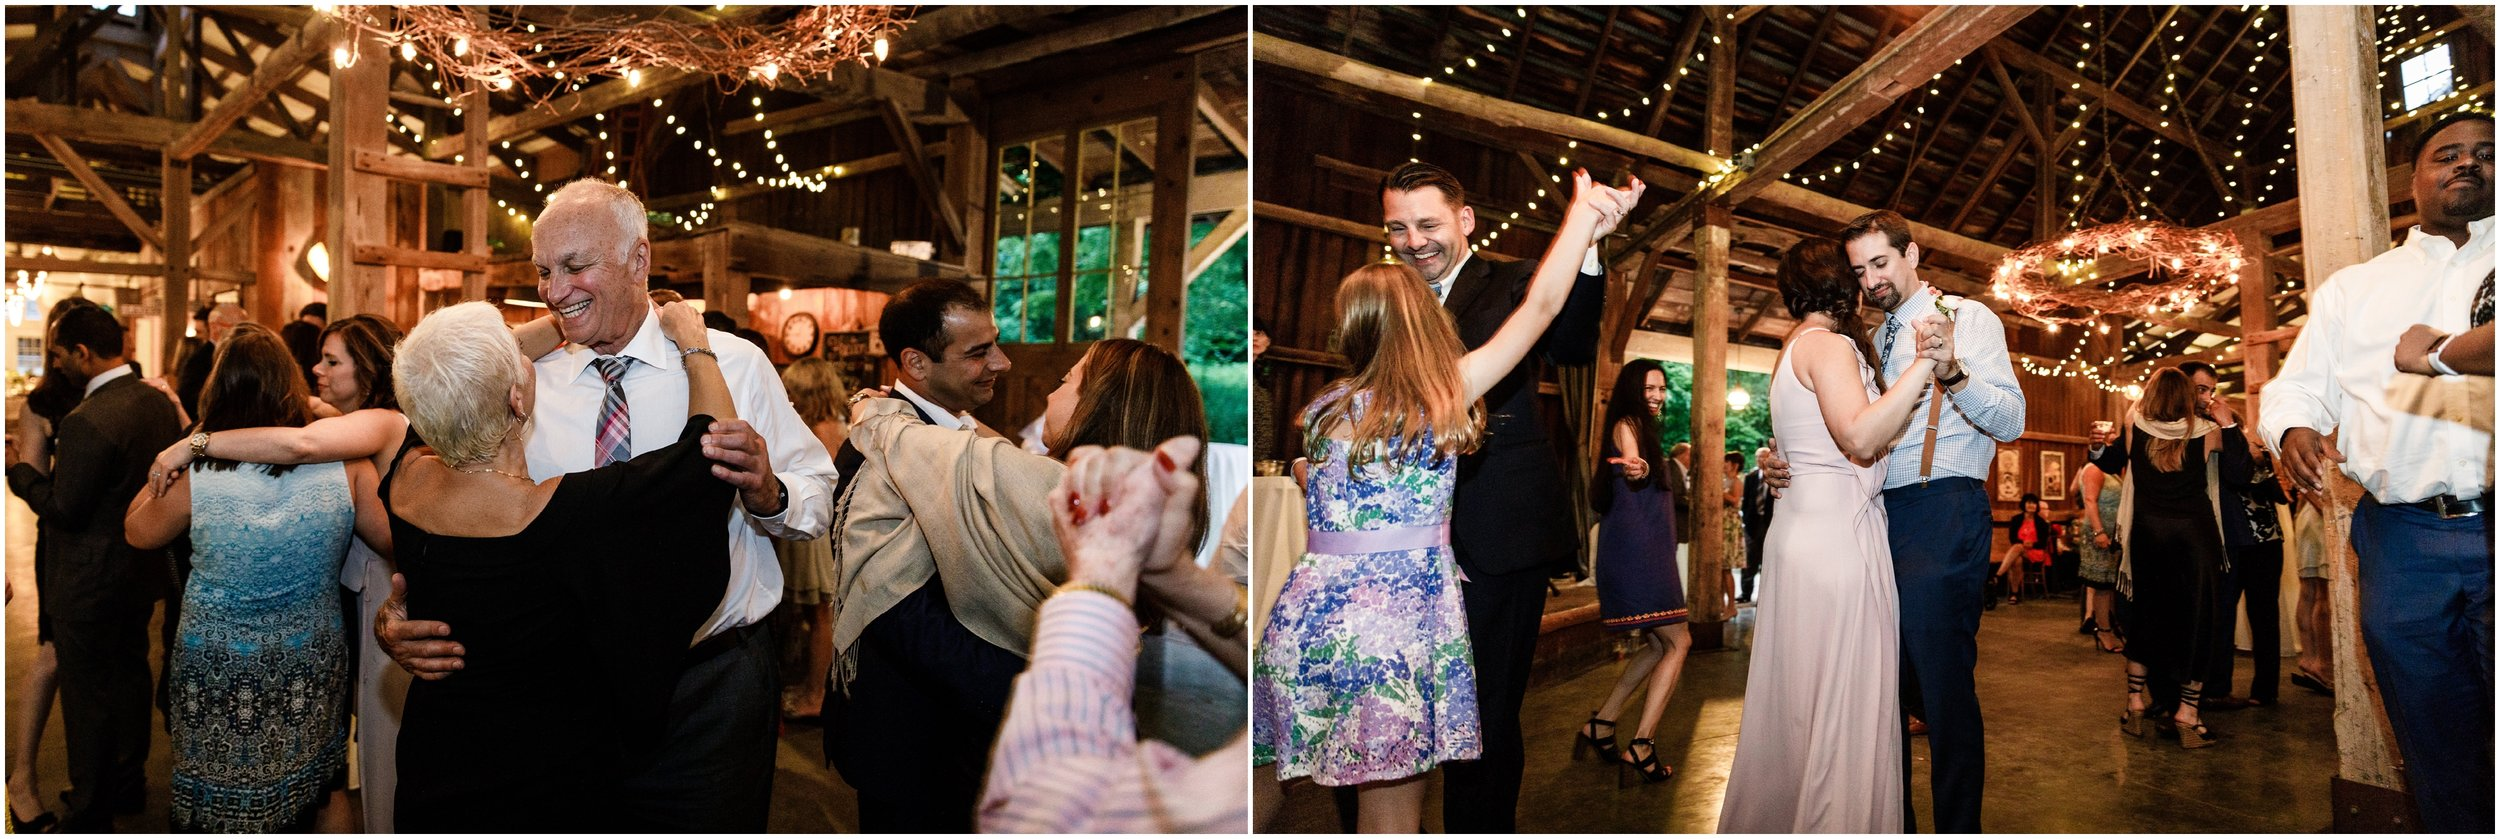 couple dancings during wedding reception